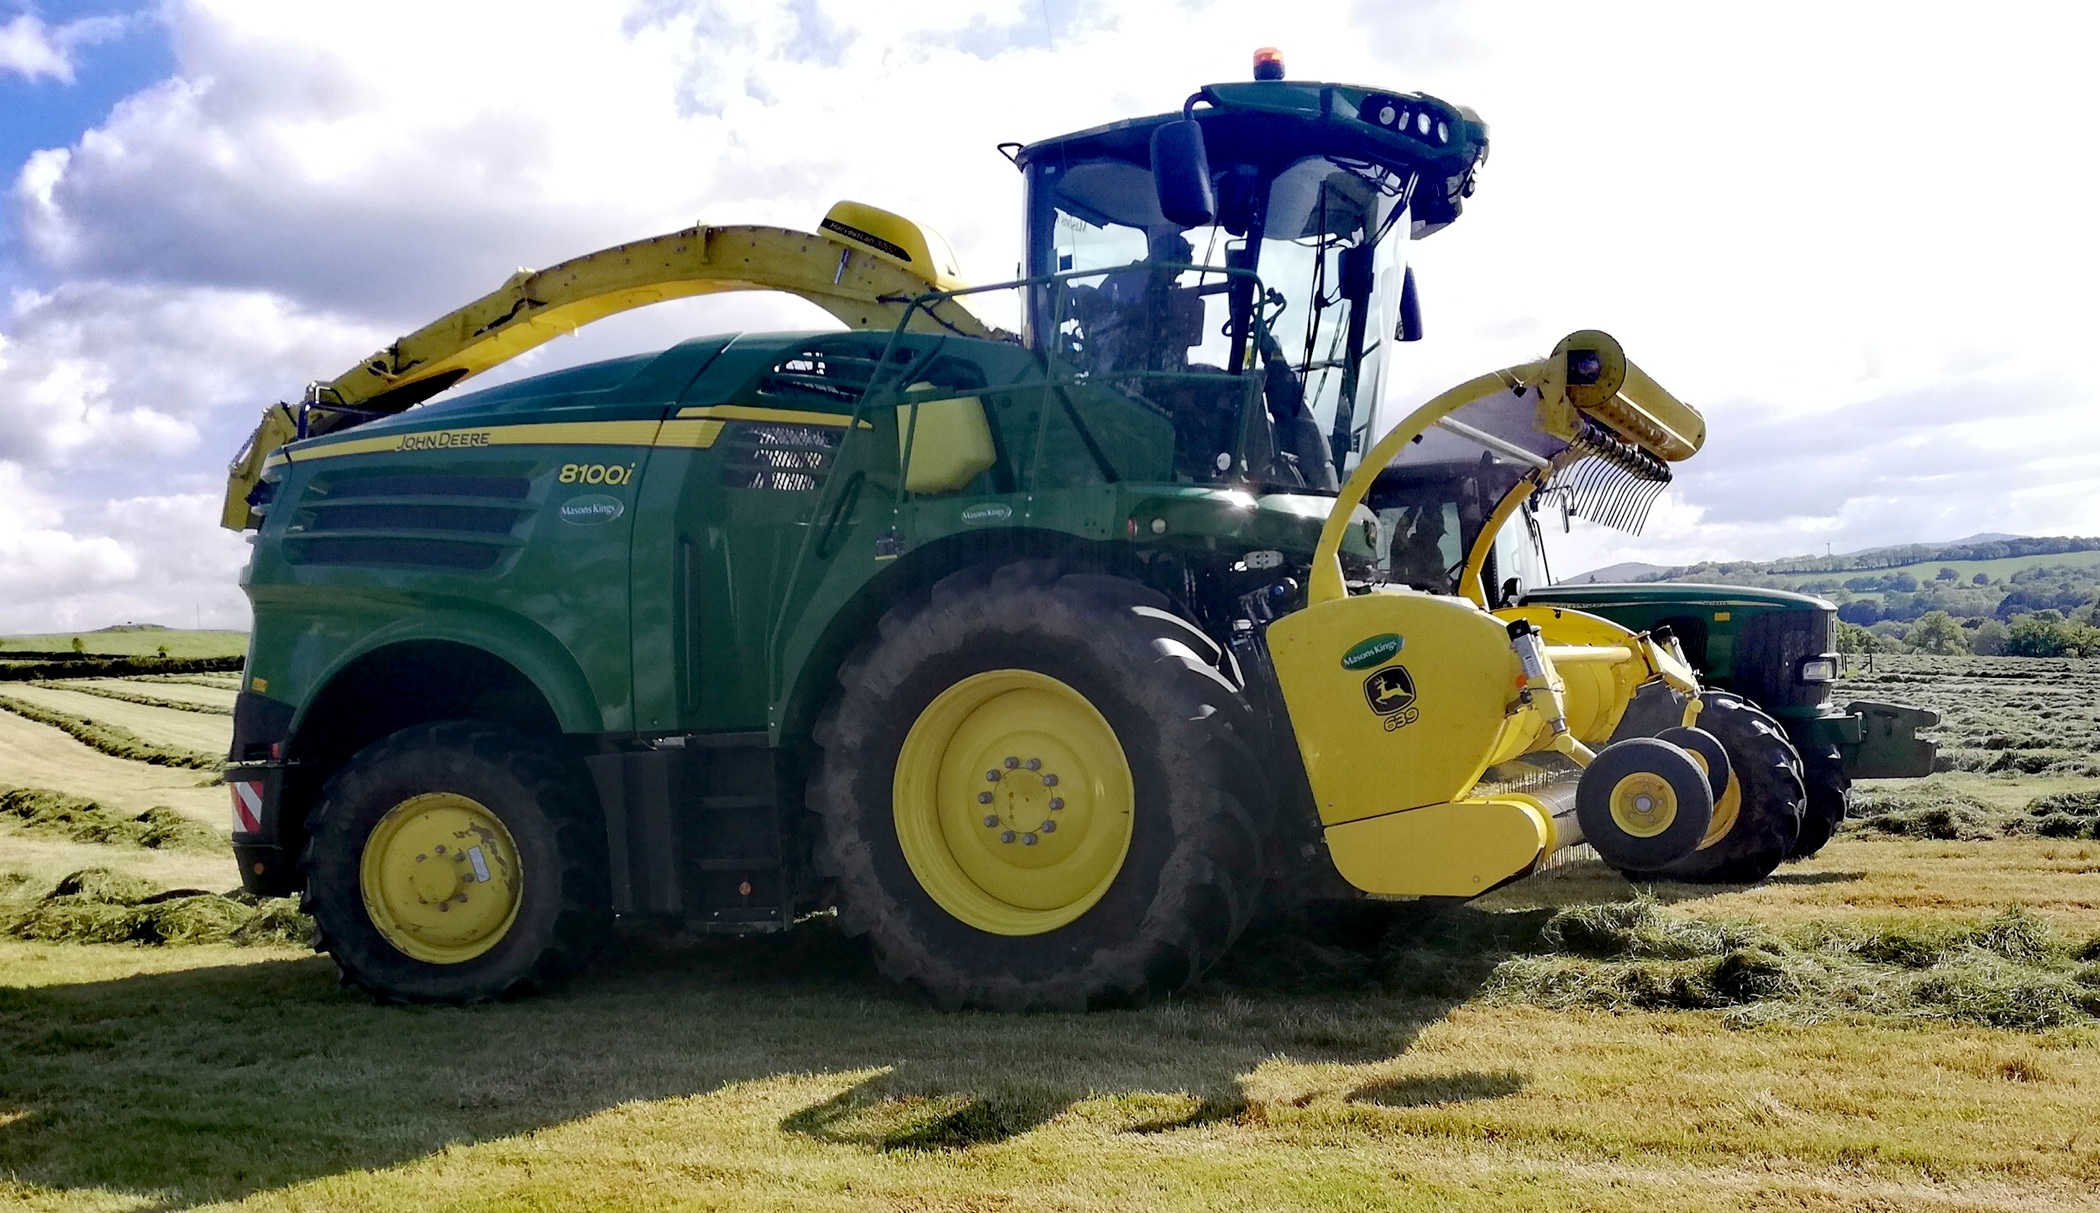 'Measure to Manage' – the first step to high-yielding quality grass